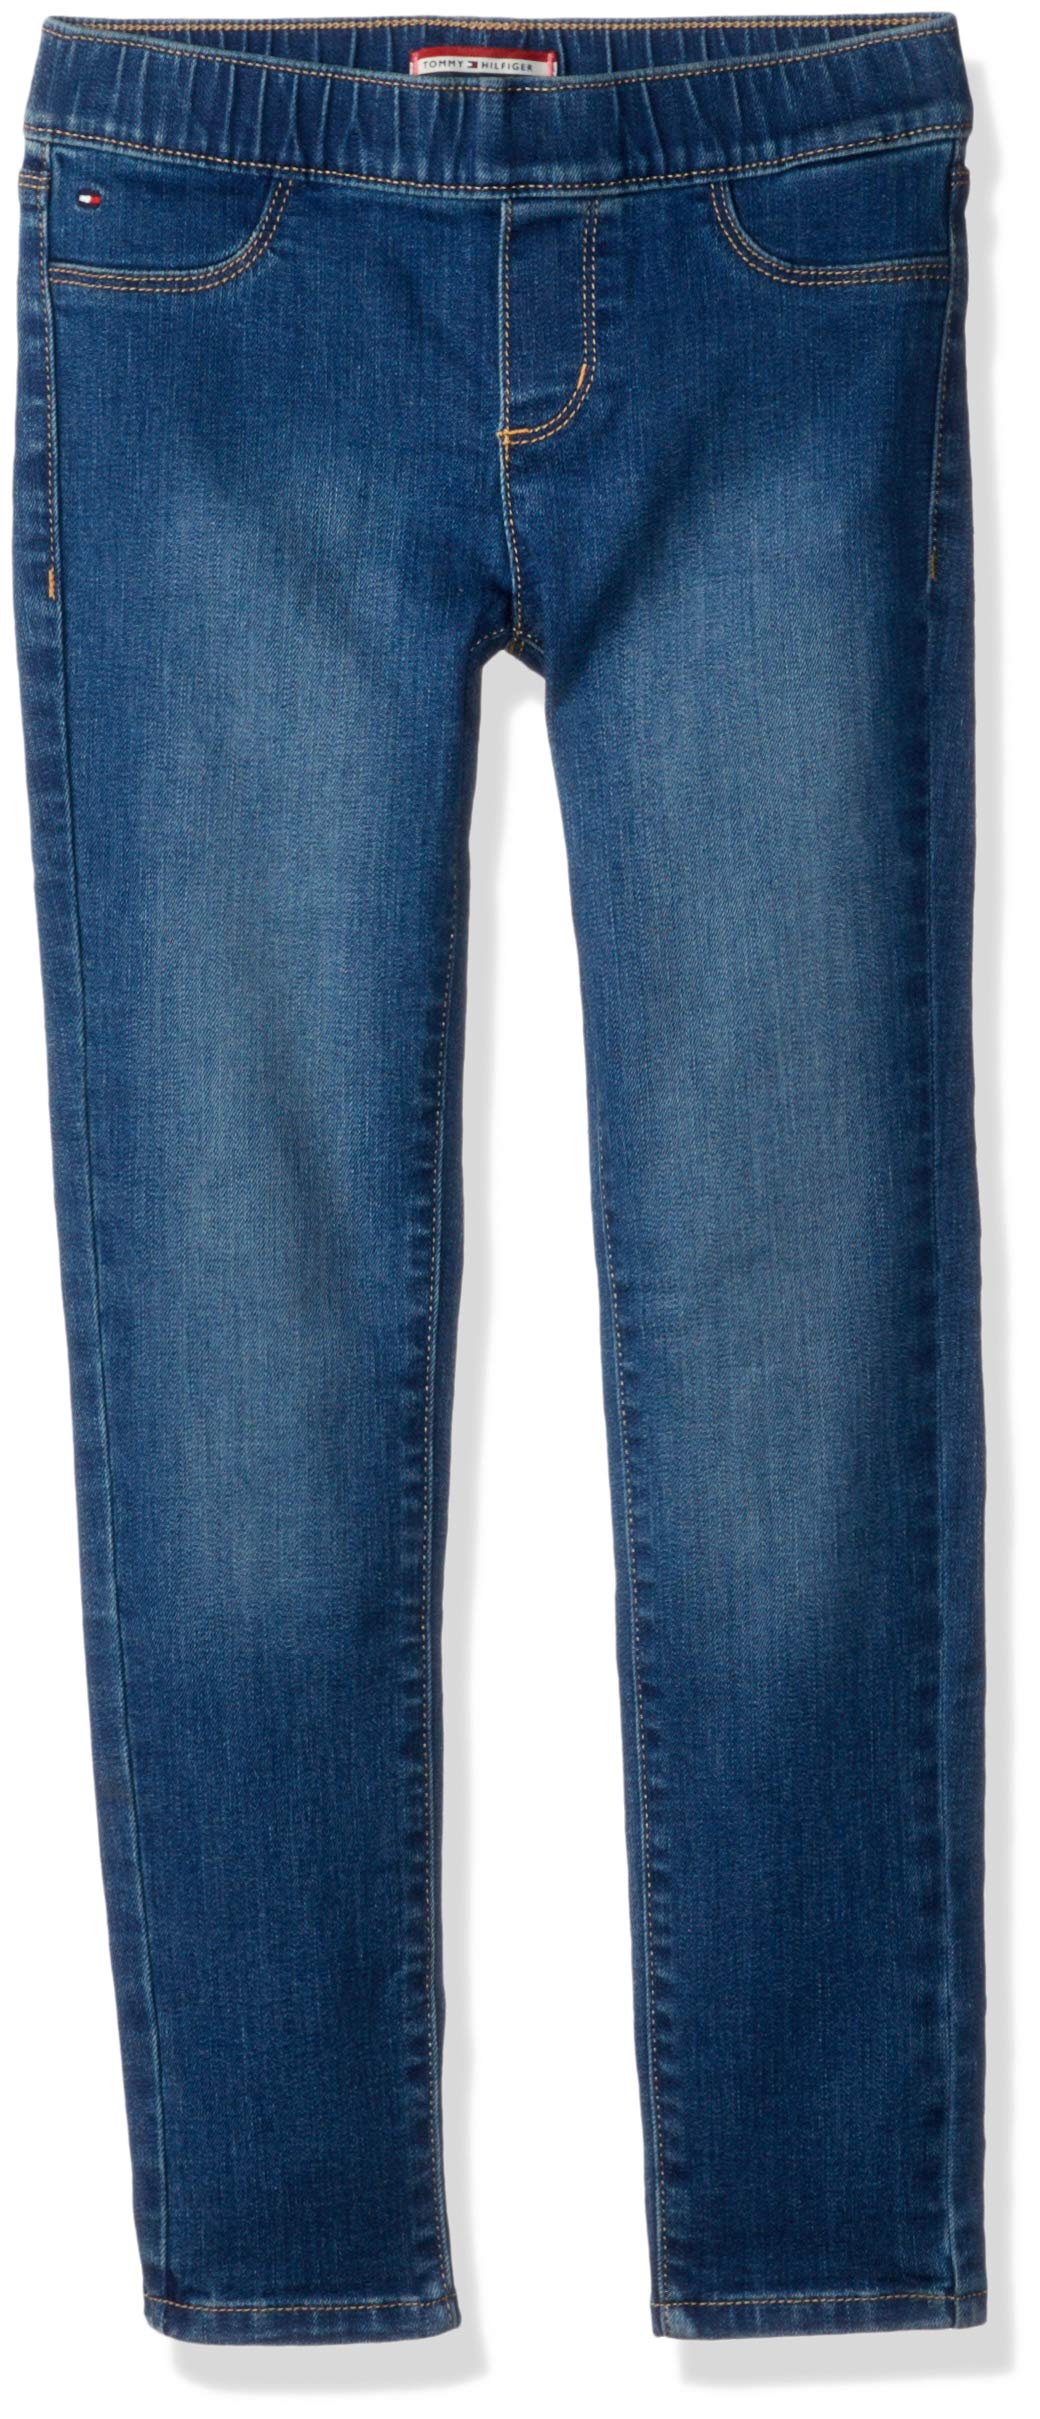 Tommy Hilfiger Girls' Adaptive Jegging Jeans with Elastic Waist and Adjustable Hems, KEITH wash 10 by Tommy Hilfiger (Image #1)